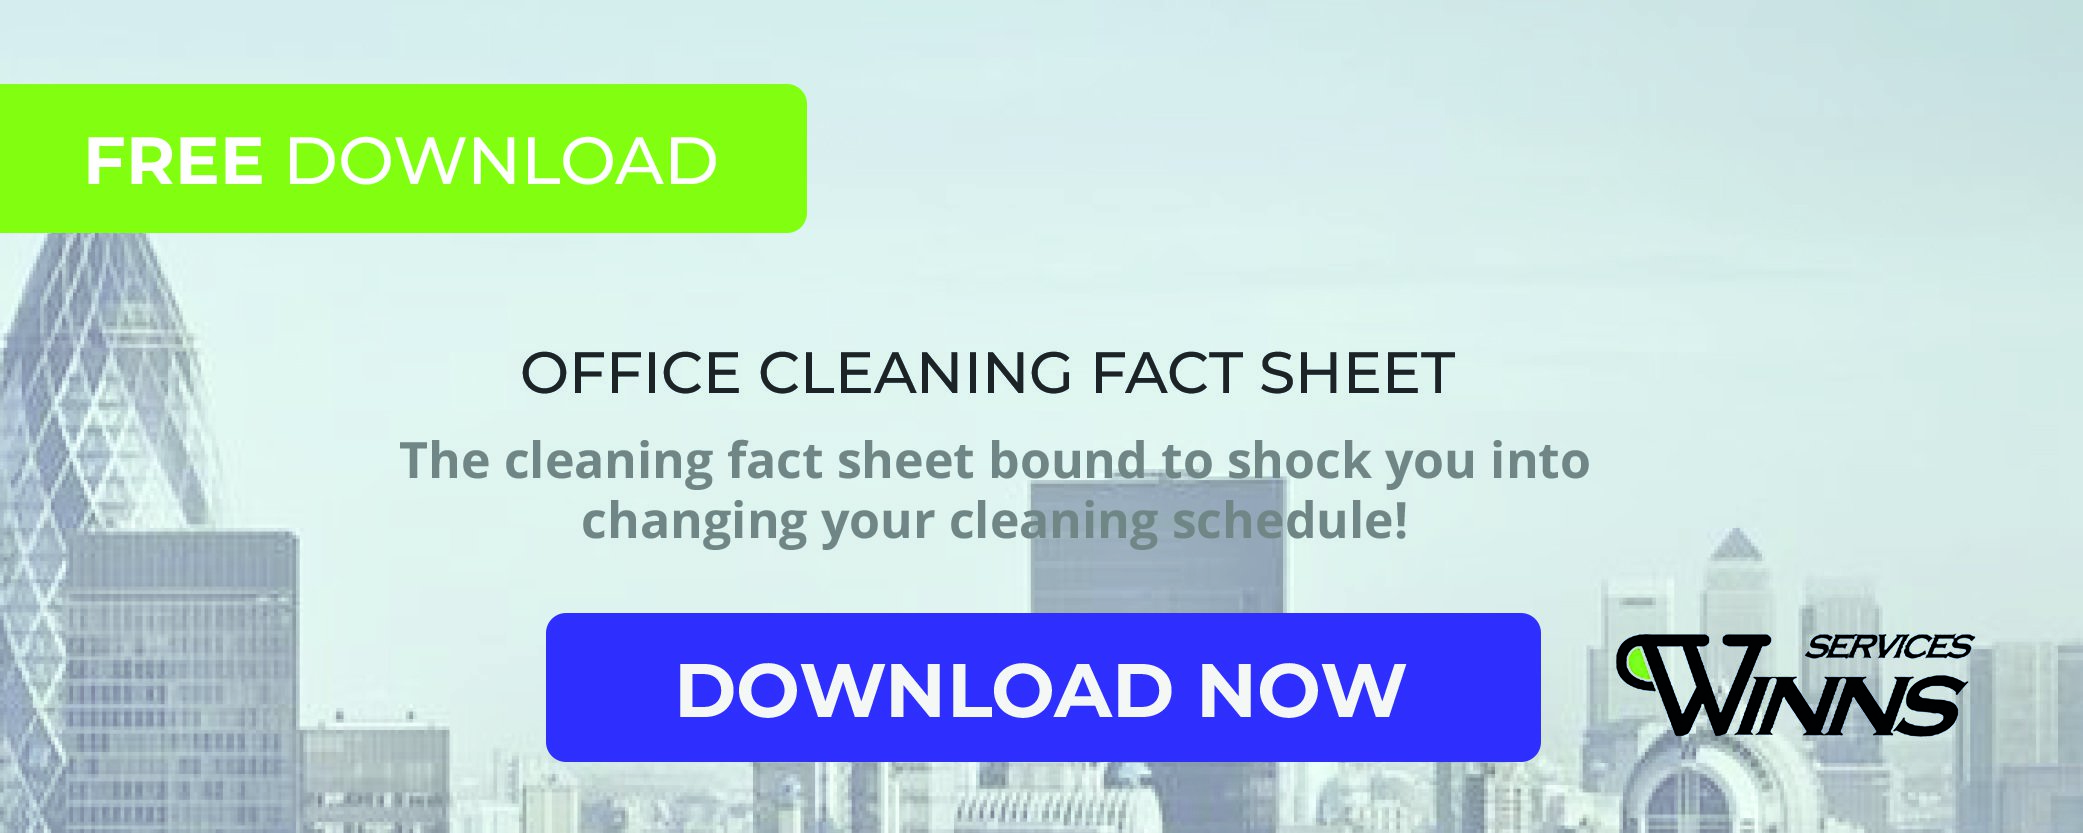 WINNS Services Cleaning Fact Sheet Download